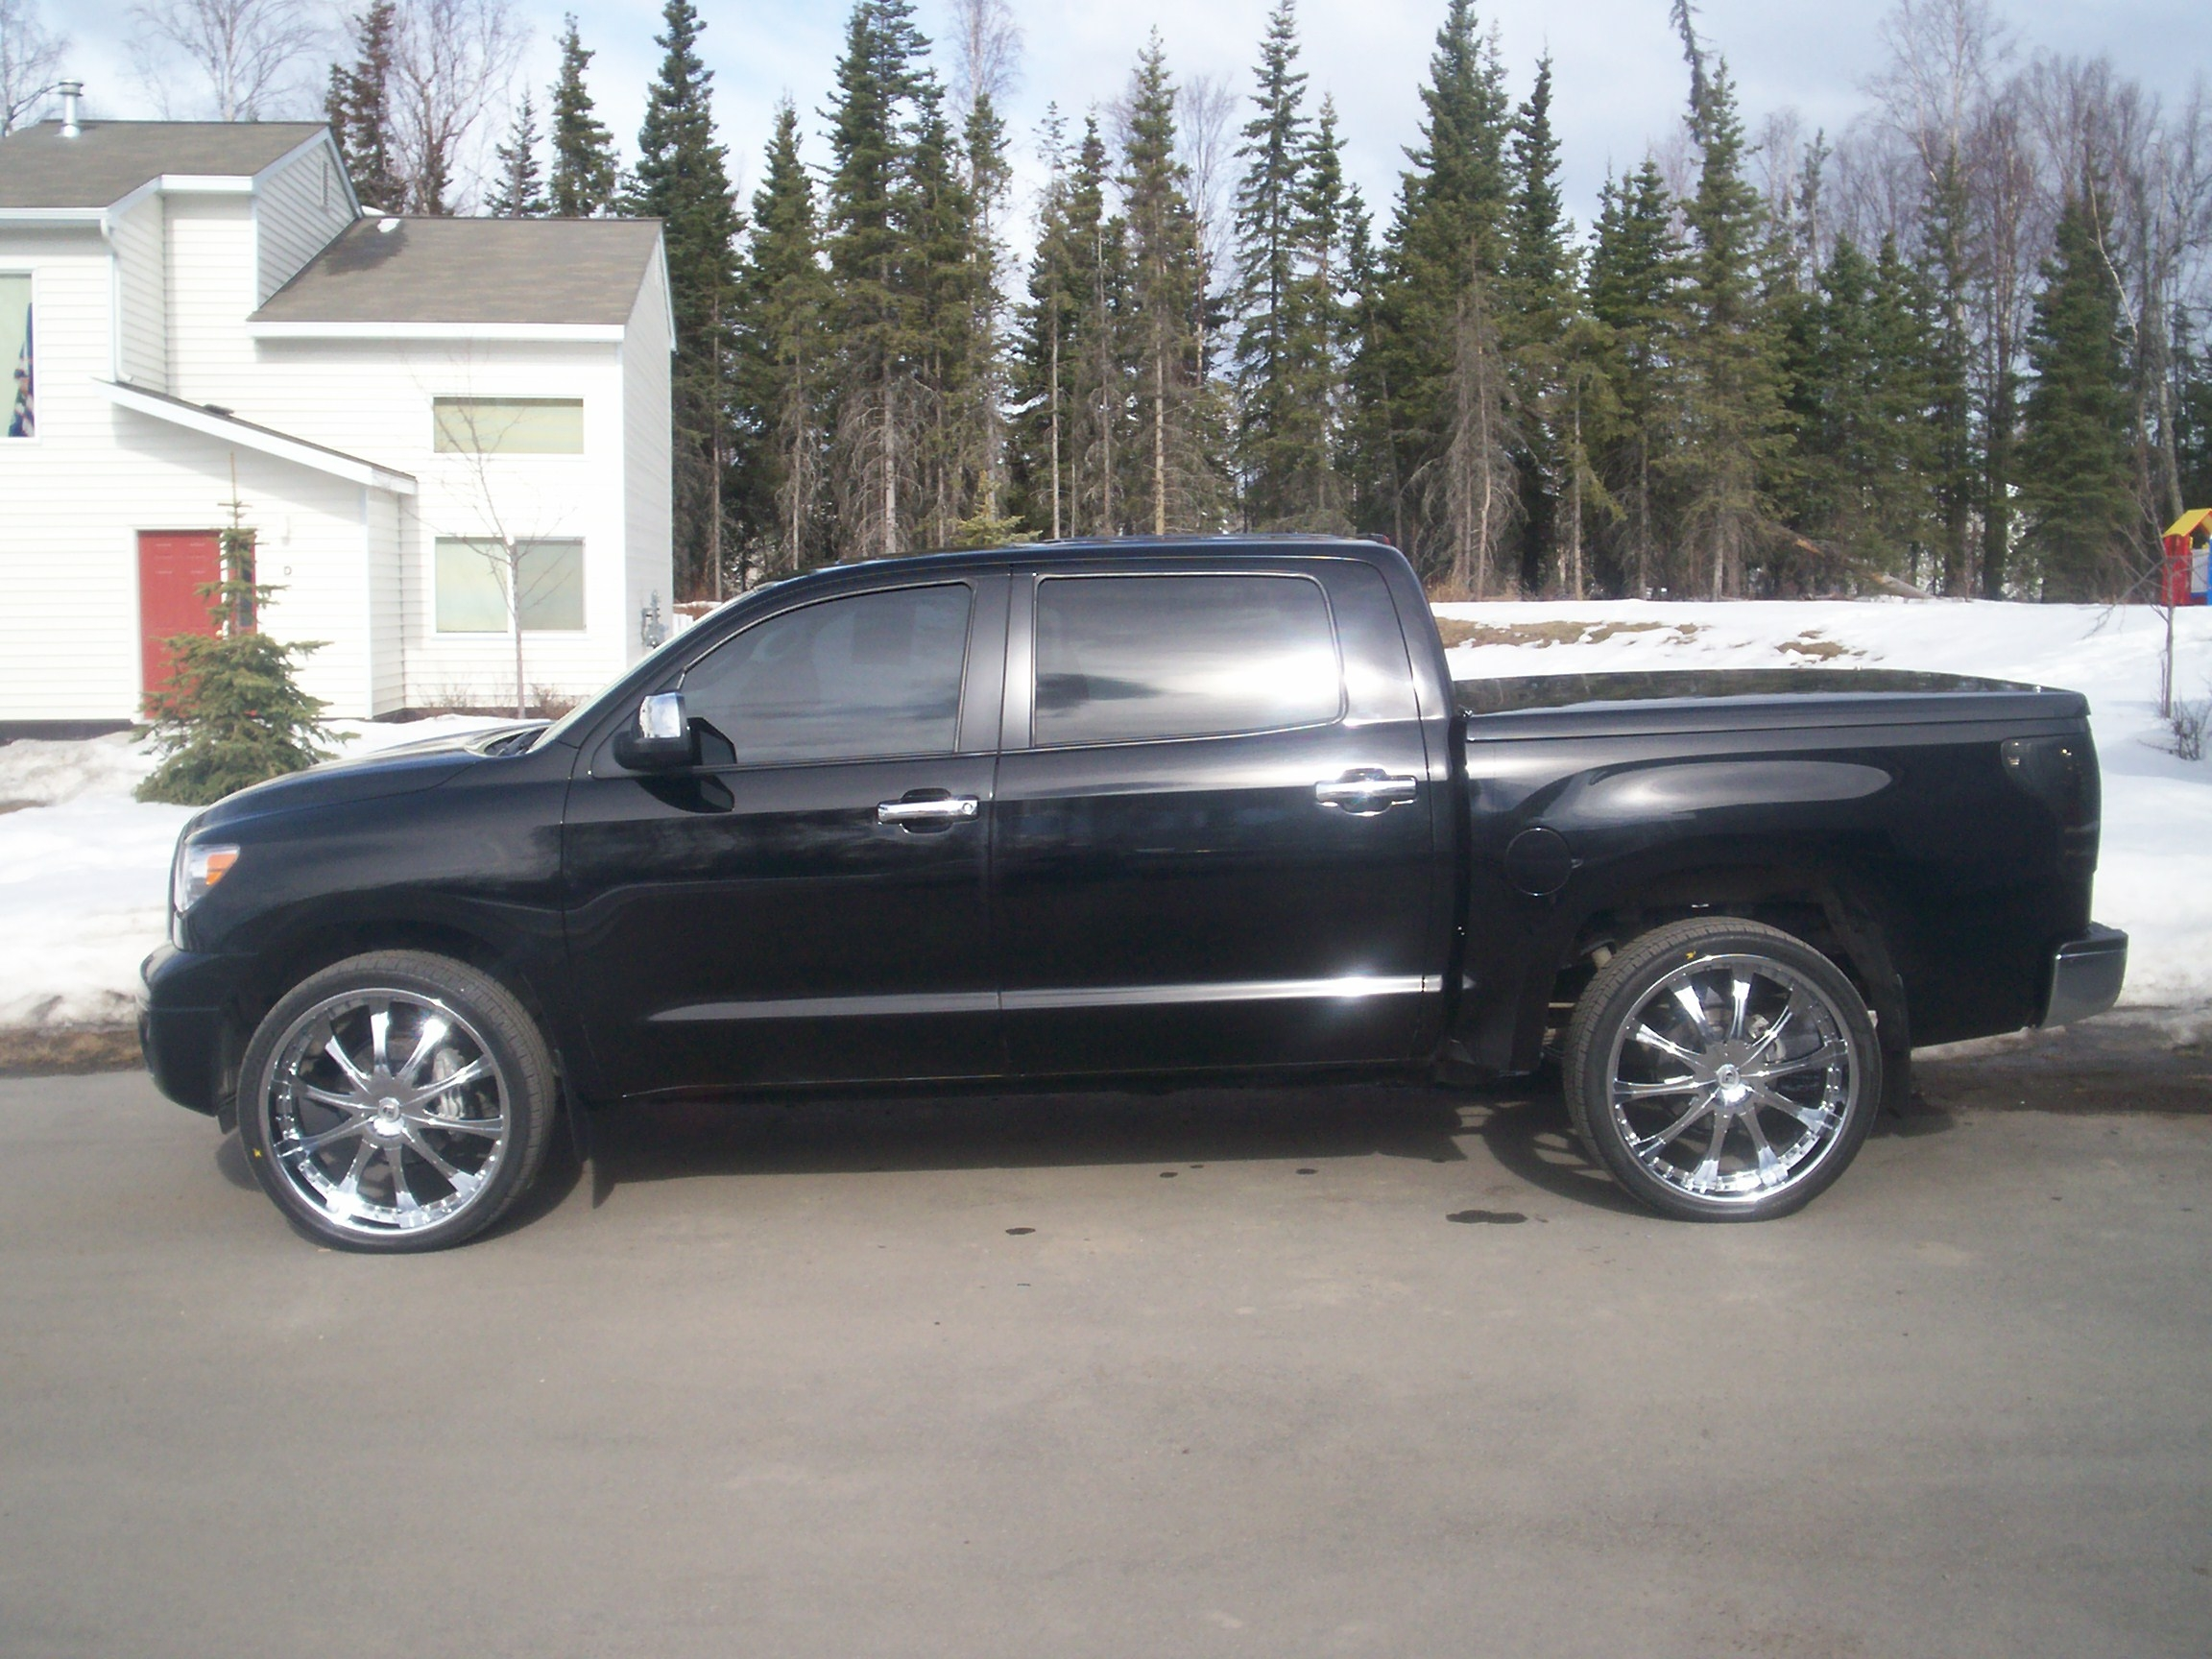 1bigreg2 2008 toyota tundra access cab specs photos modification info at cardomain. Black Bedroom Furniture Sets. Home Design Ideas